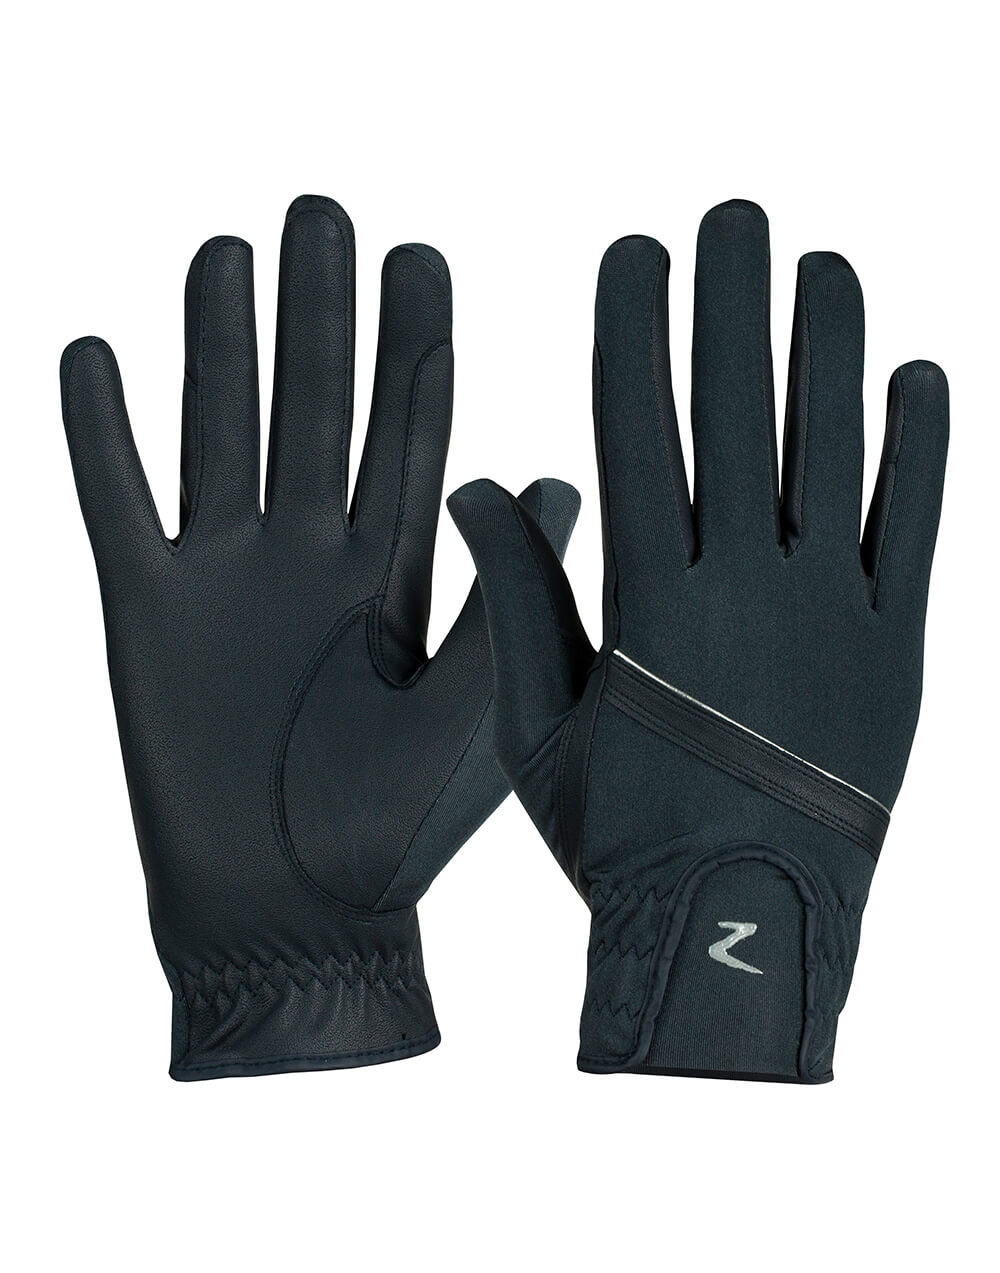 Classy lightweight and breathable lycra horse riding gloves with decorative silver stripe and horze logo and PU leather grip